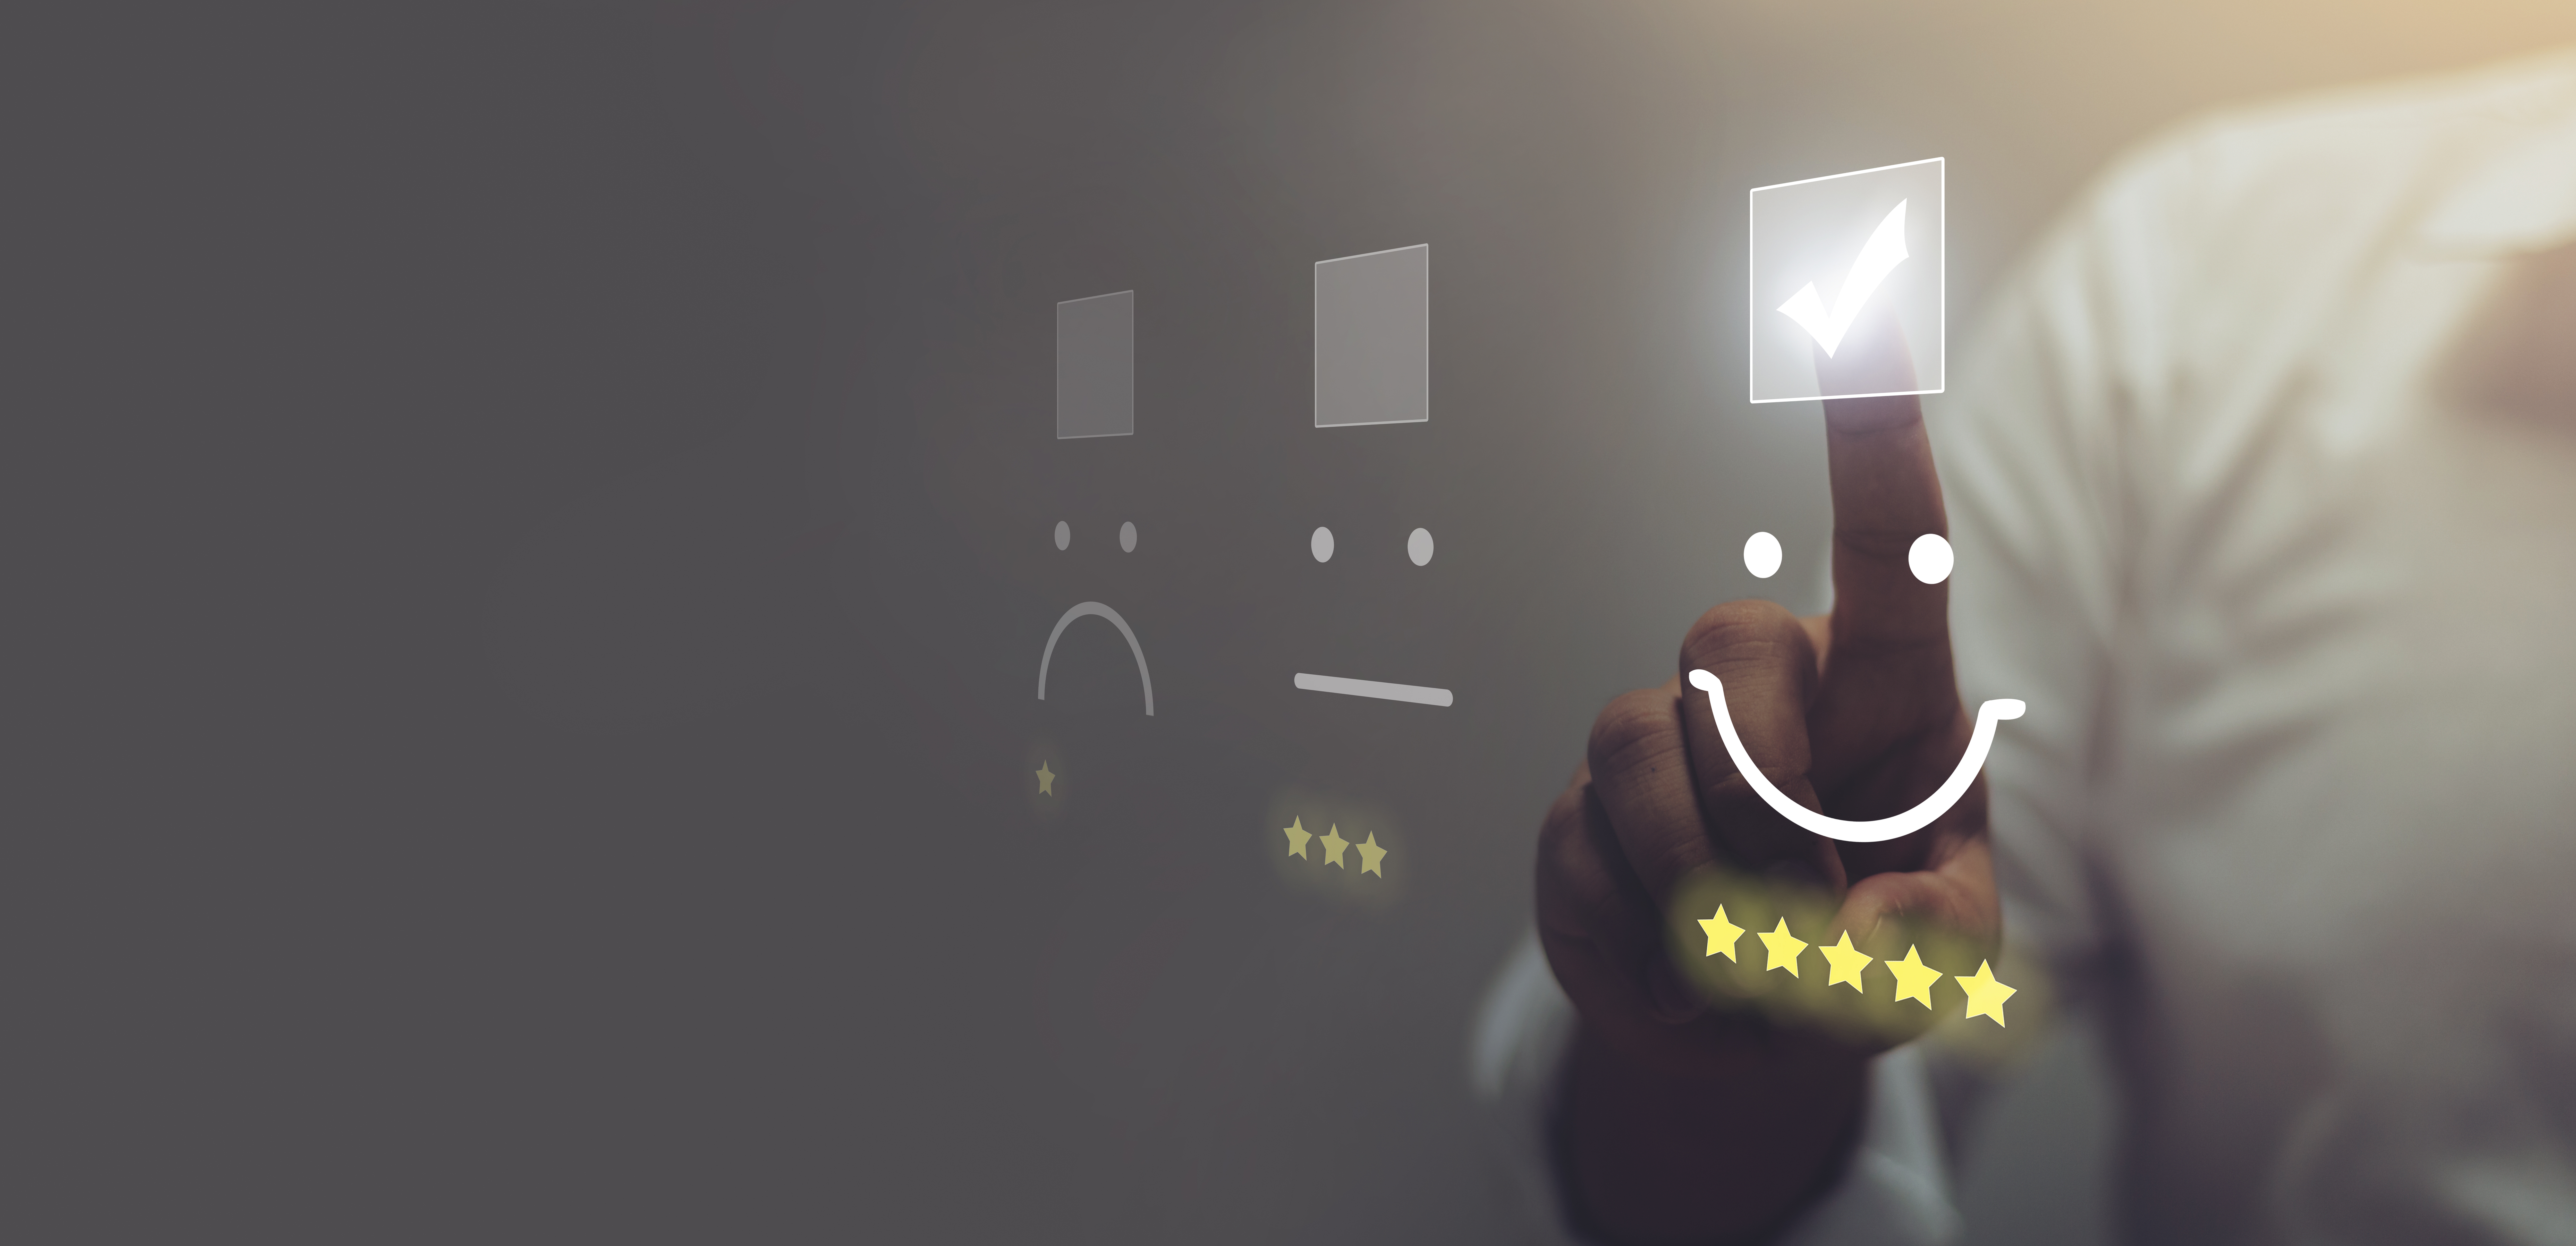 Customer Experience Management: What Is It and Why Is It Important?